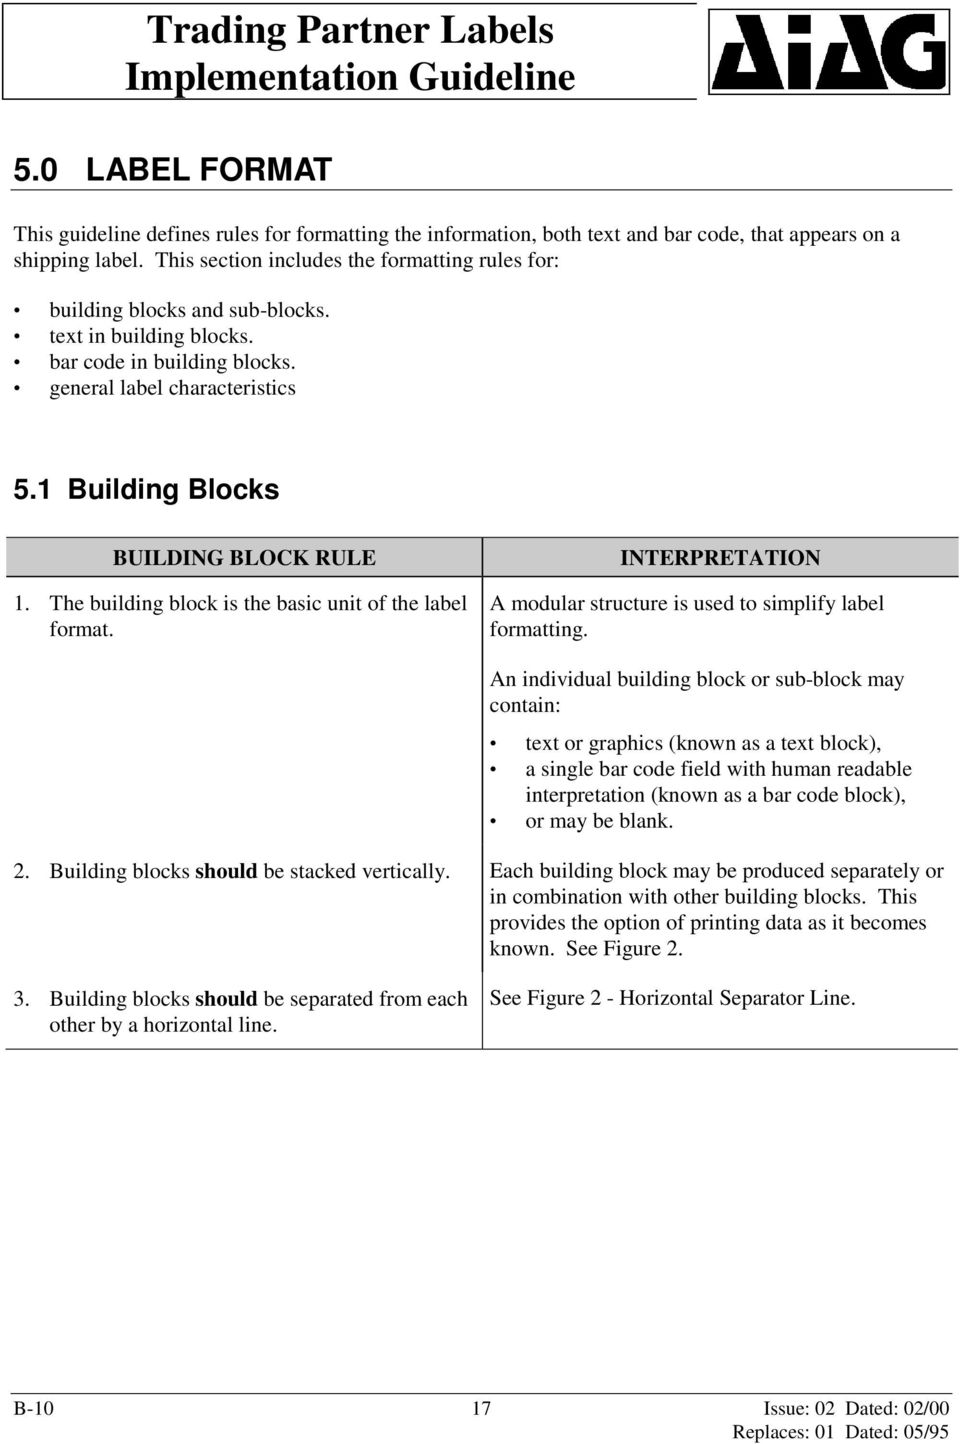 1 Building Blocks BUILDING BLOCK RULE 1. The building block is the basic unit of the label format. A modular structure is used to simplify label formatting.